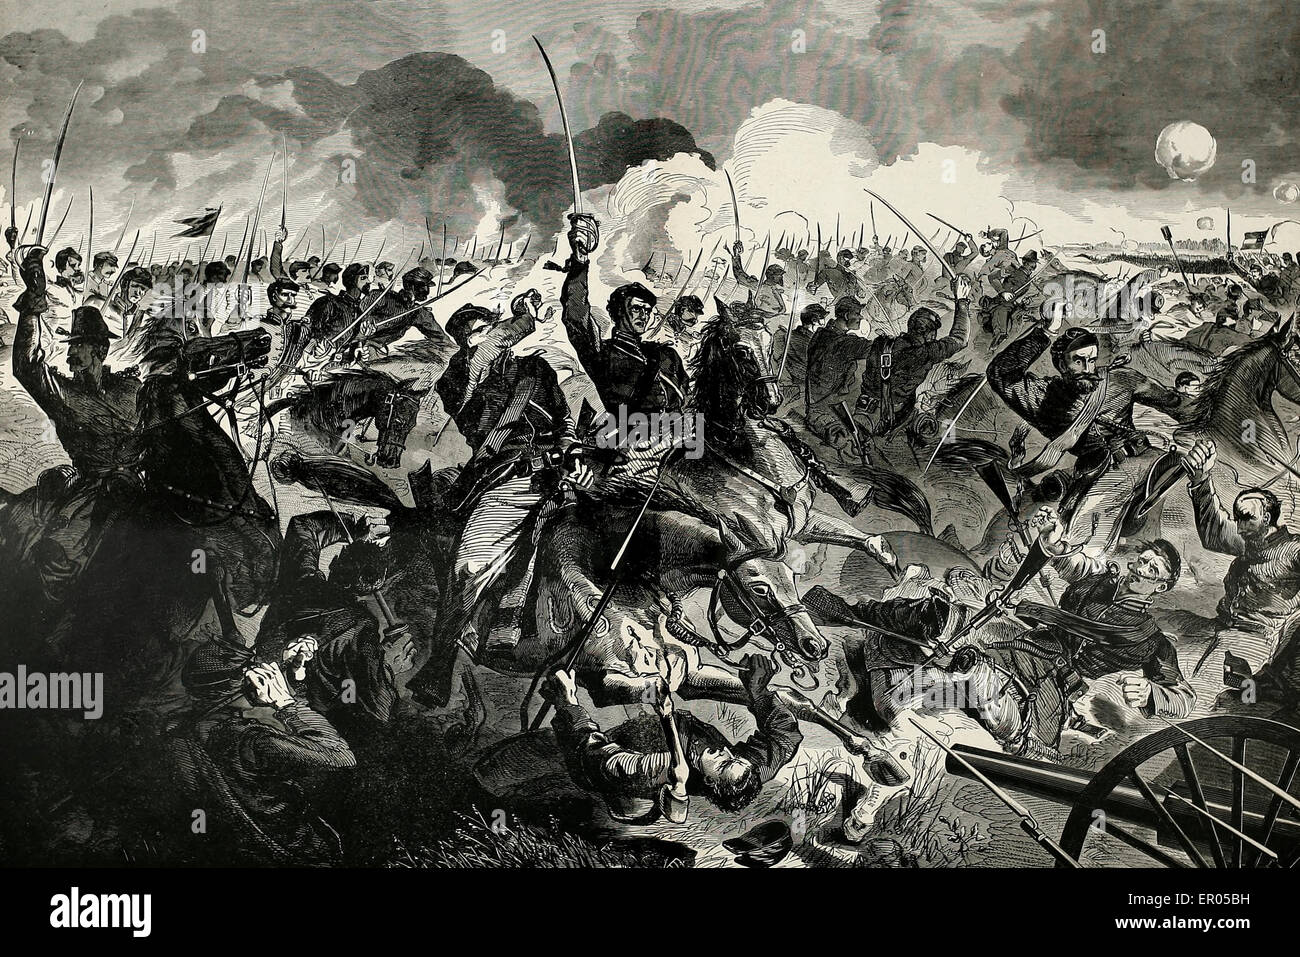 A Cavalry charge during the USA Civil War - Stock Image